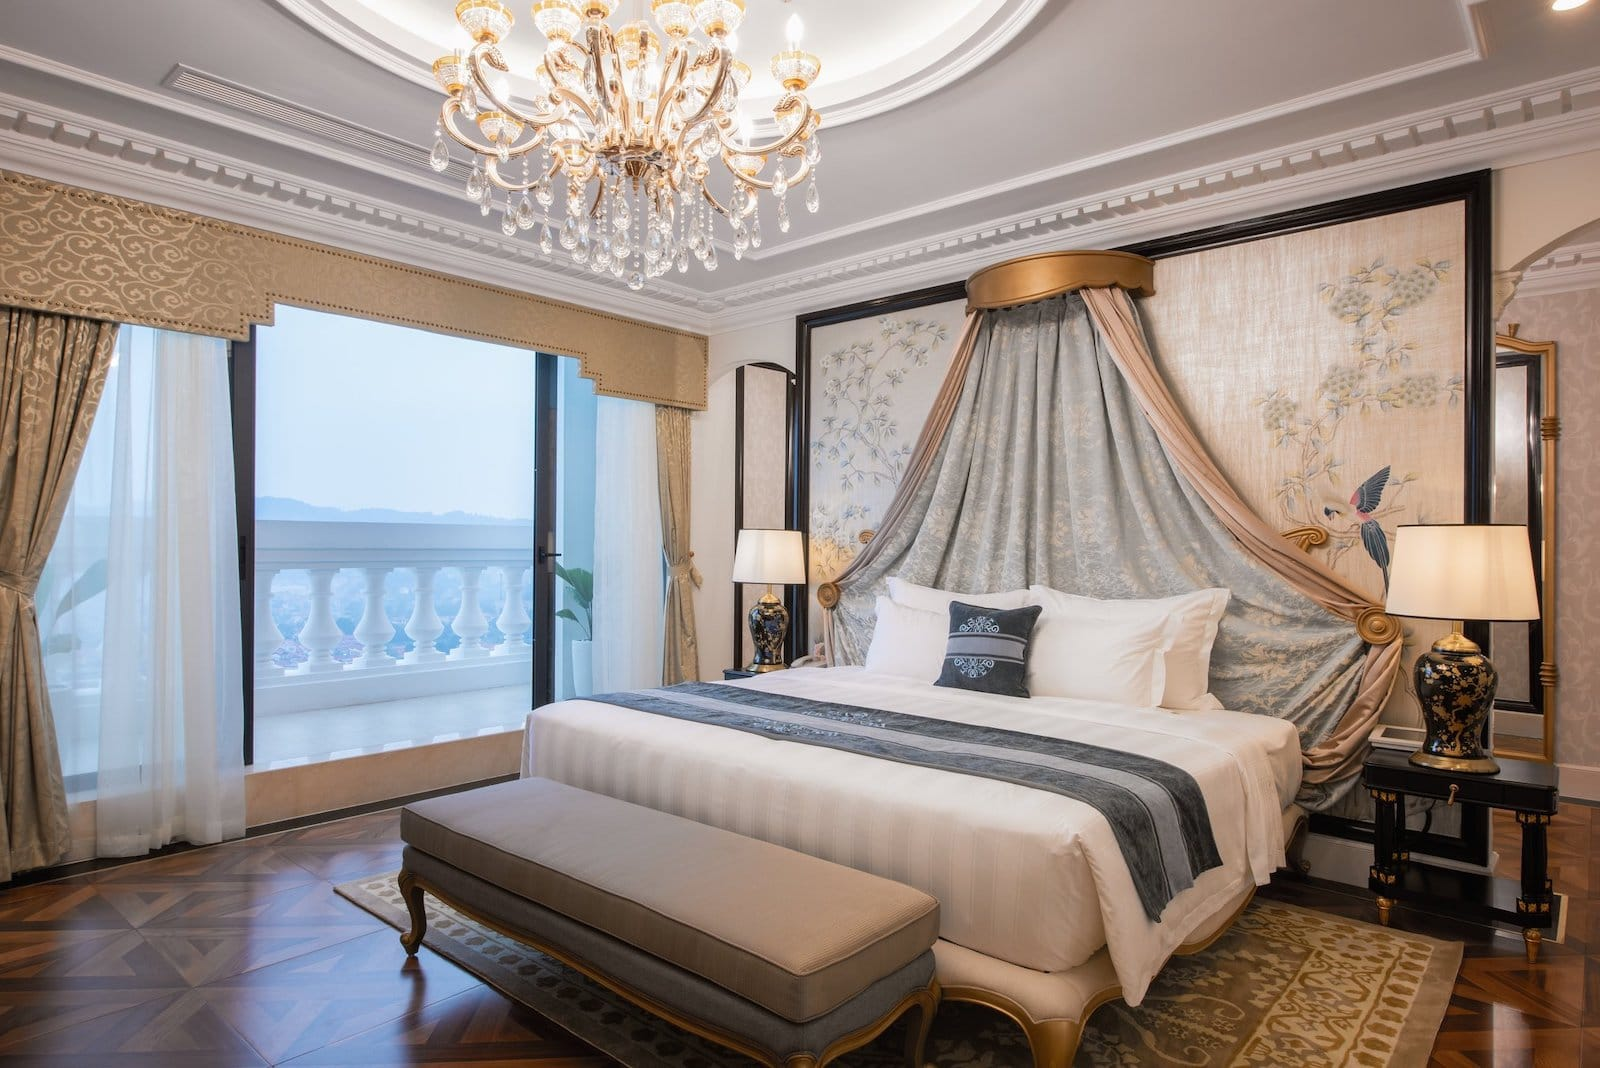 Image of the Vinpearl Hotel in Tay Ninh, Vietnam